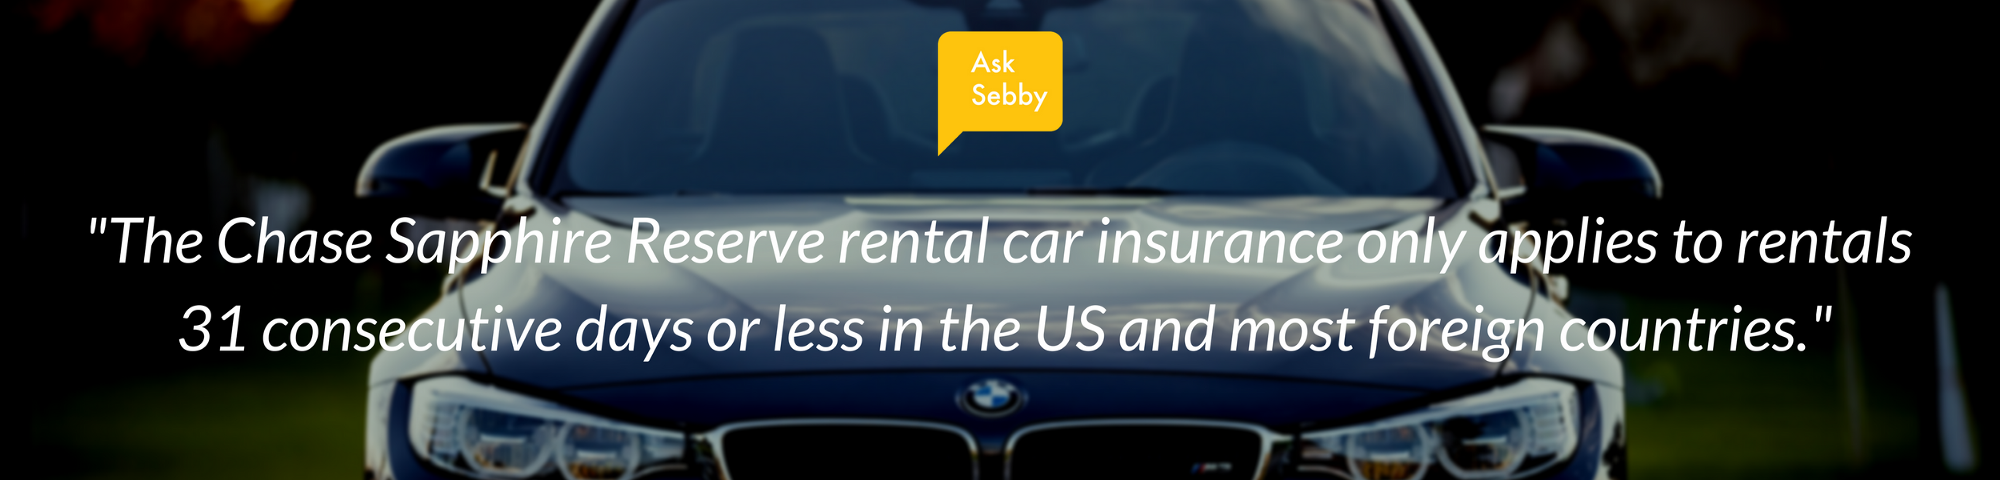 Chase Sapphire Reserve Rental Car Liability Insurance